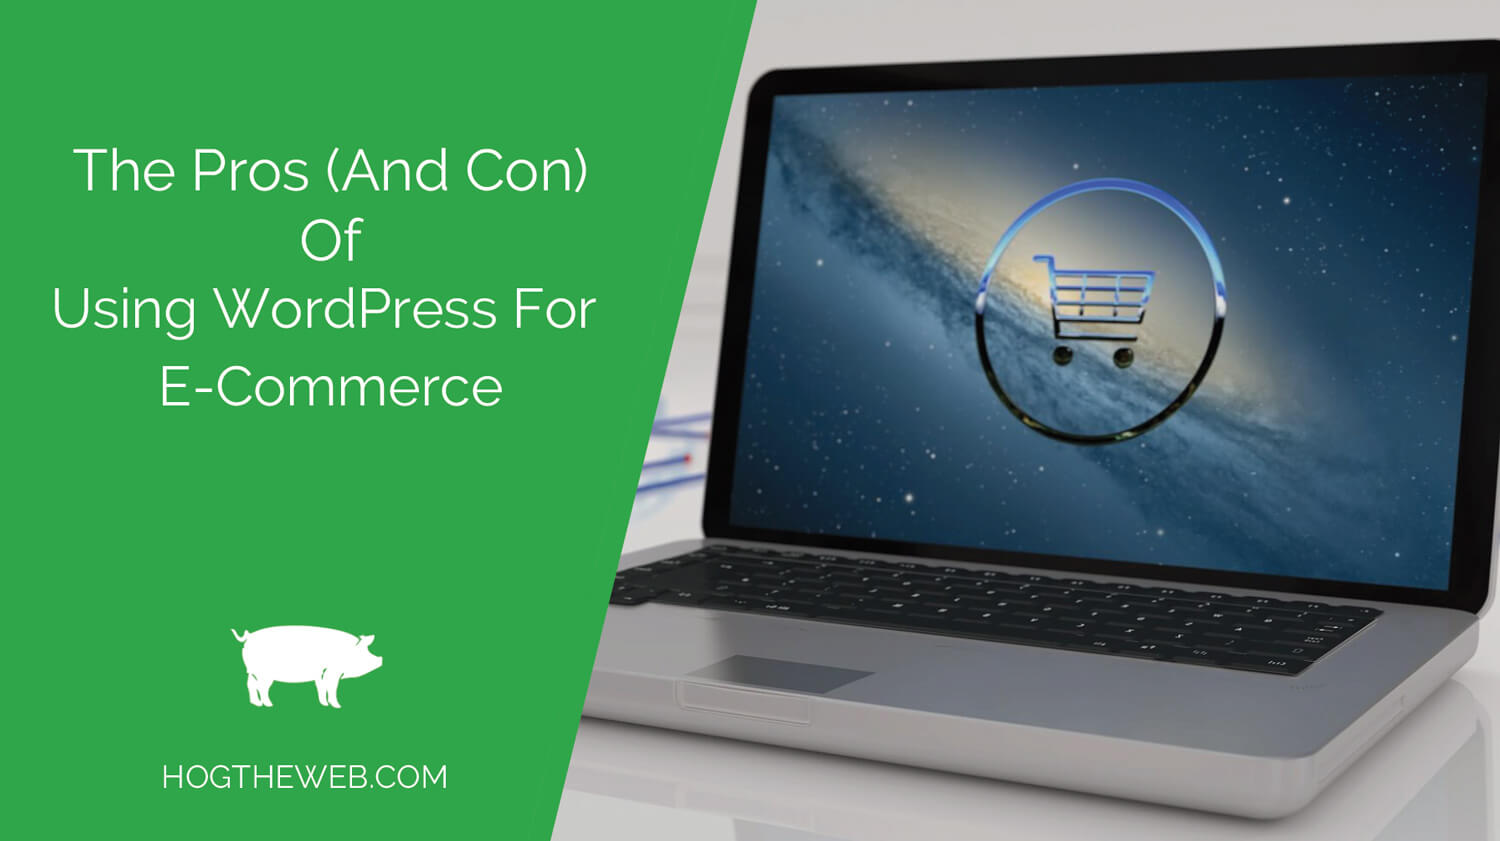 The Pros (And Con) Of Using WordPress For Ecommerce